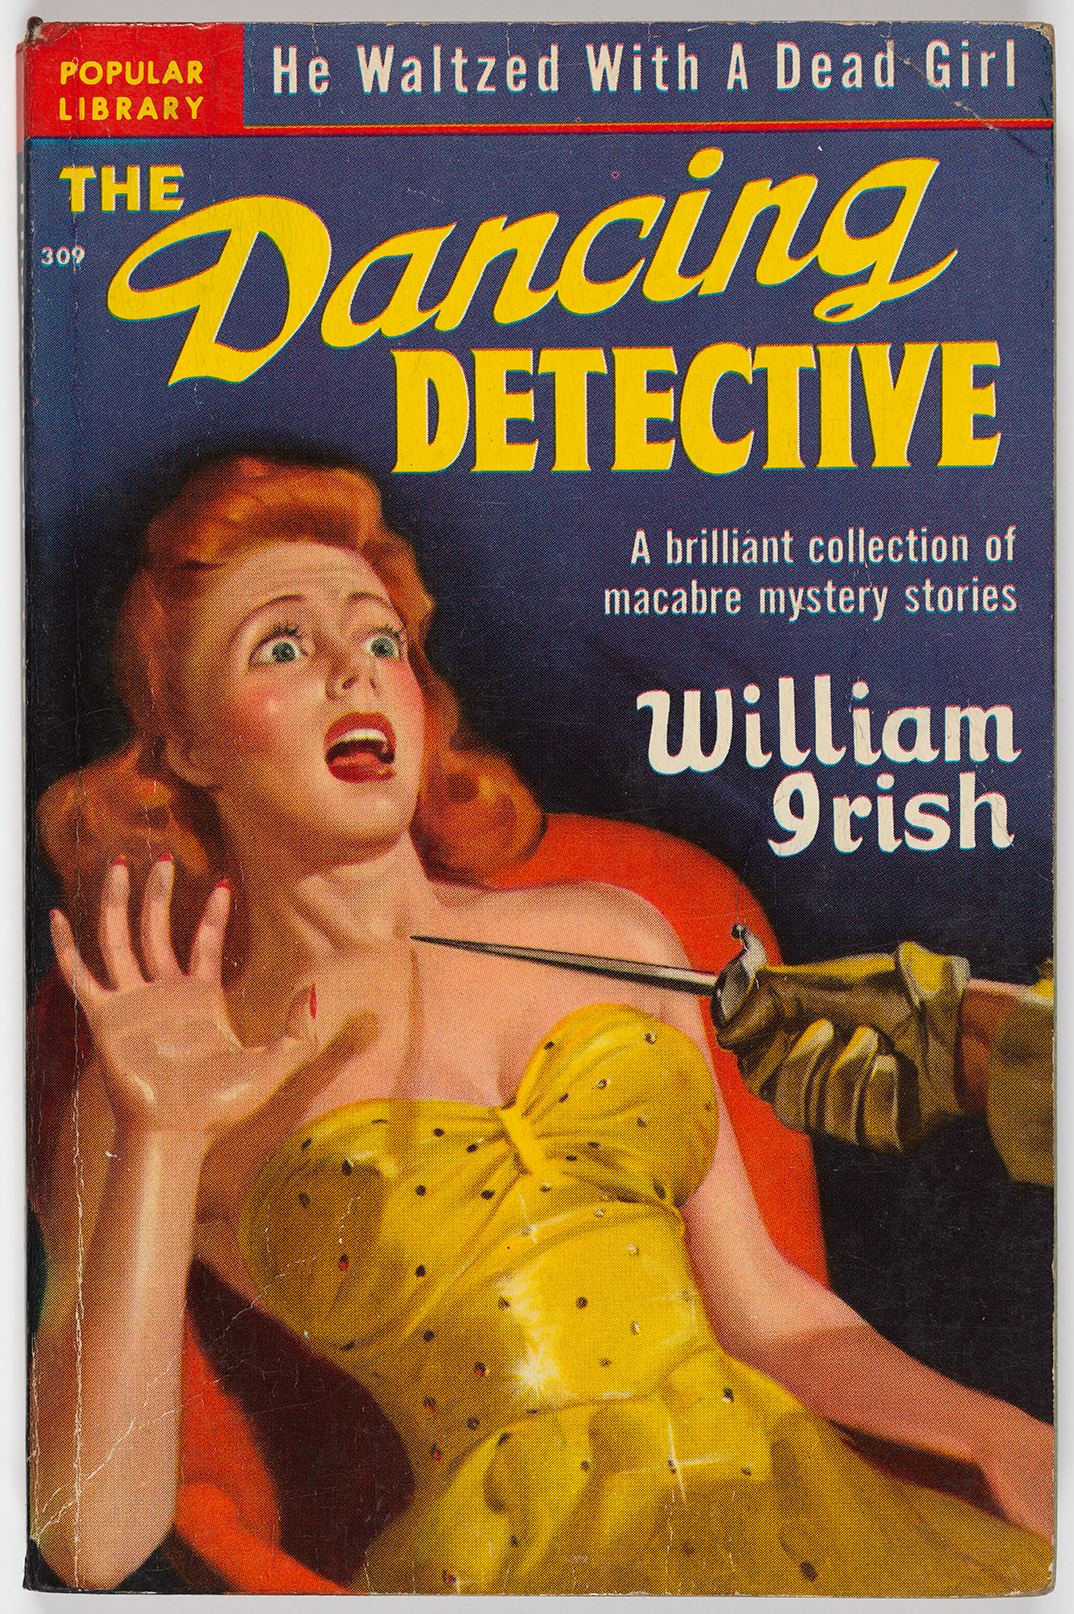 "This ""brilliant collection of macabre mystery stories"" was written by William Irish and published by Popular Library. The cover shows a frightened woman, with one hand raised in surrender and a startled expression on her face. There is someone pointing a sword directly at her throat, but this person is not visible, except for a pair of hands cloaked in yellow gloves."